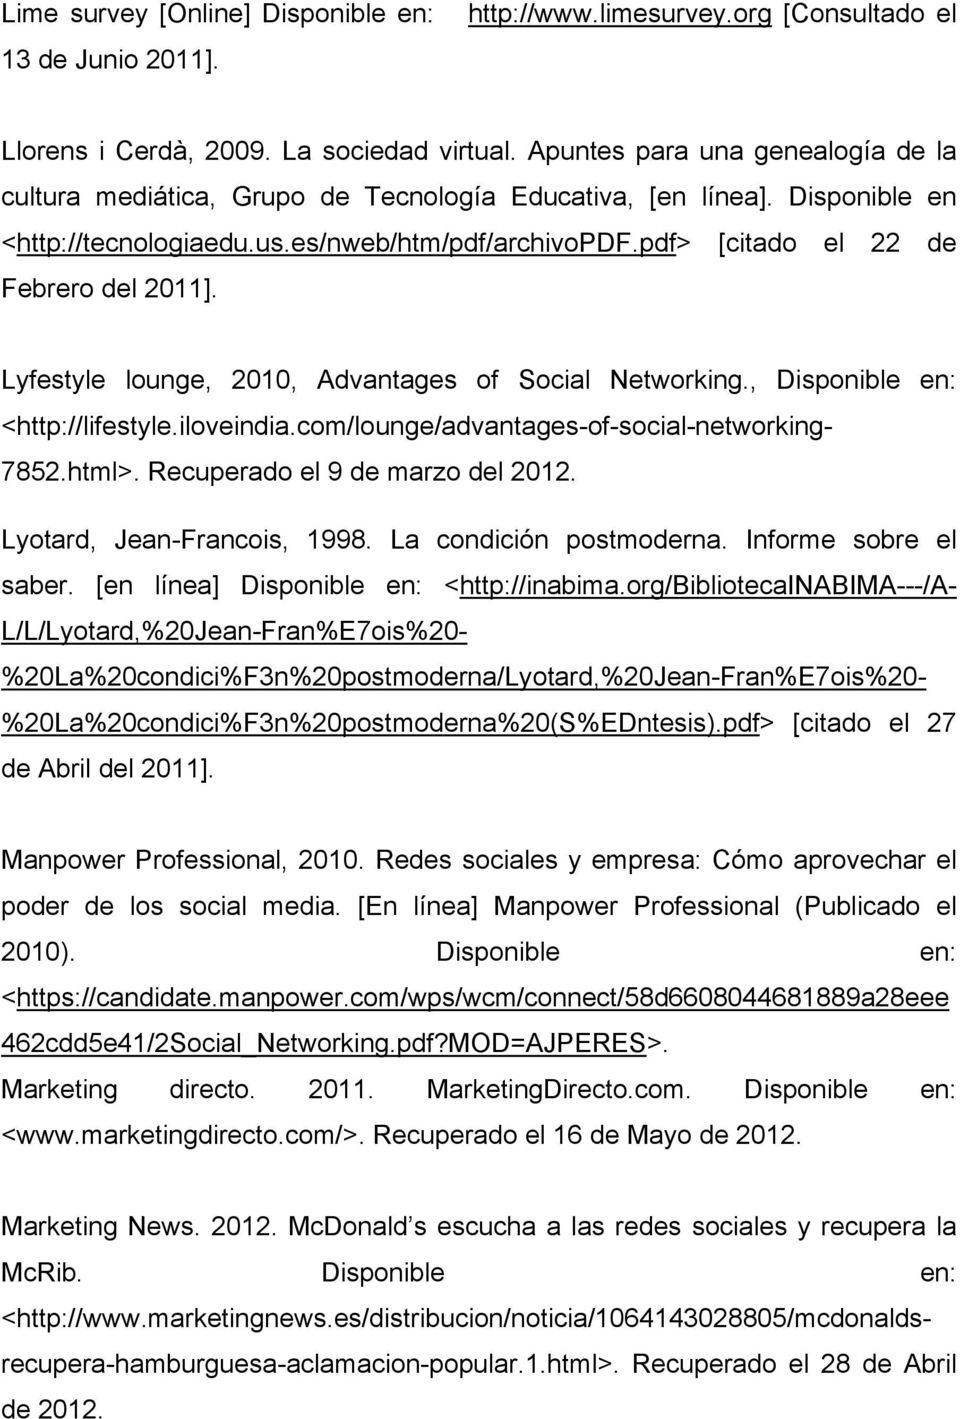 pdf> [citado el 22 de Febrero del 2011]. Lyfestyle lounge, 2010, Advantages of Social Networking., Disponible en: <http://lifestyle.iloveindia.com/lounge/advantages-of-social-networking- 7852.html>.